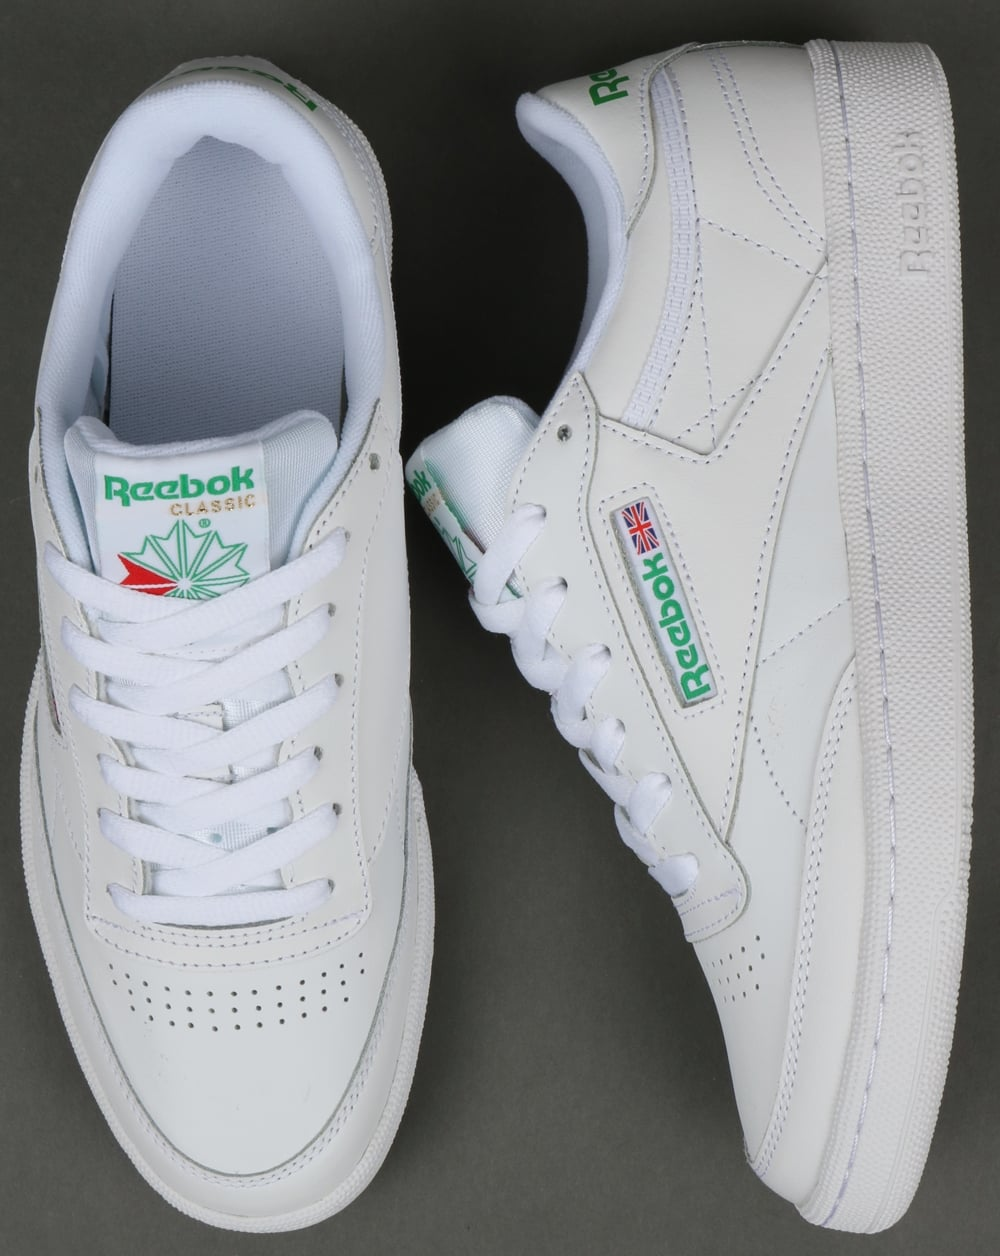 644cf40a1088c Reebok Club C 85 Trainers in White and Green